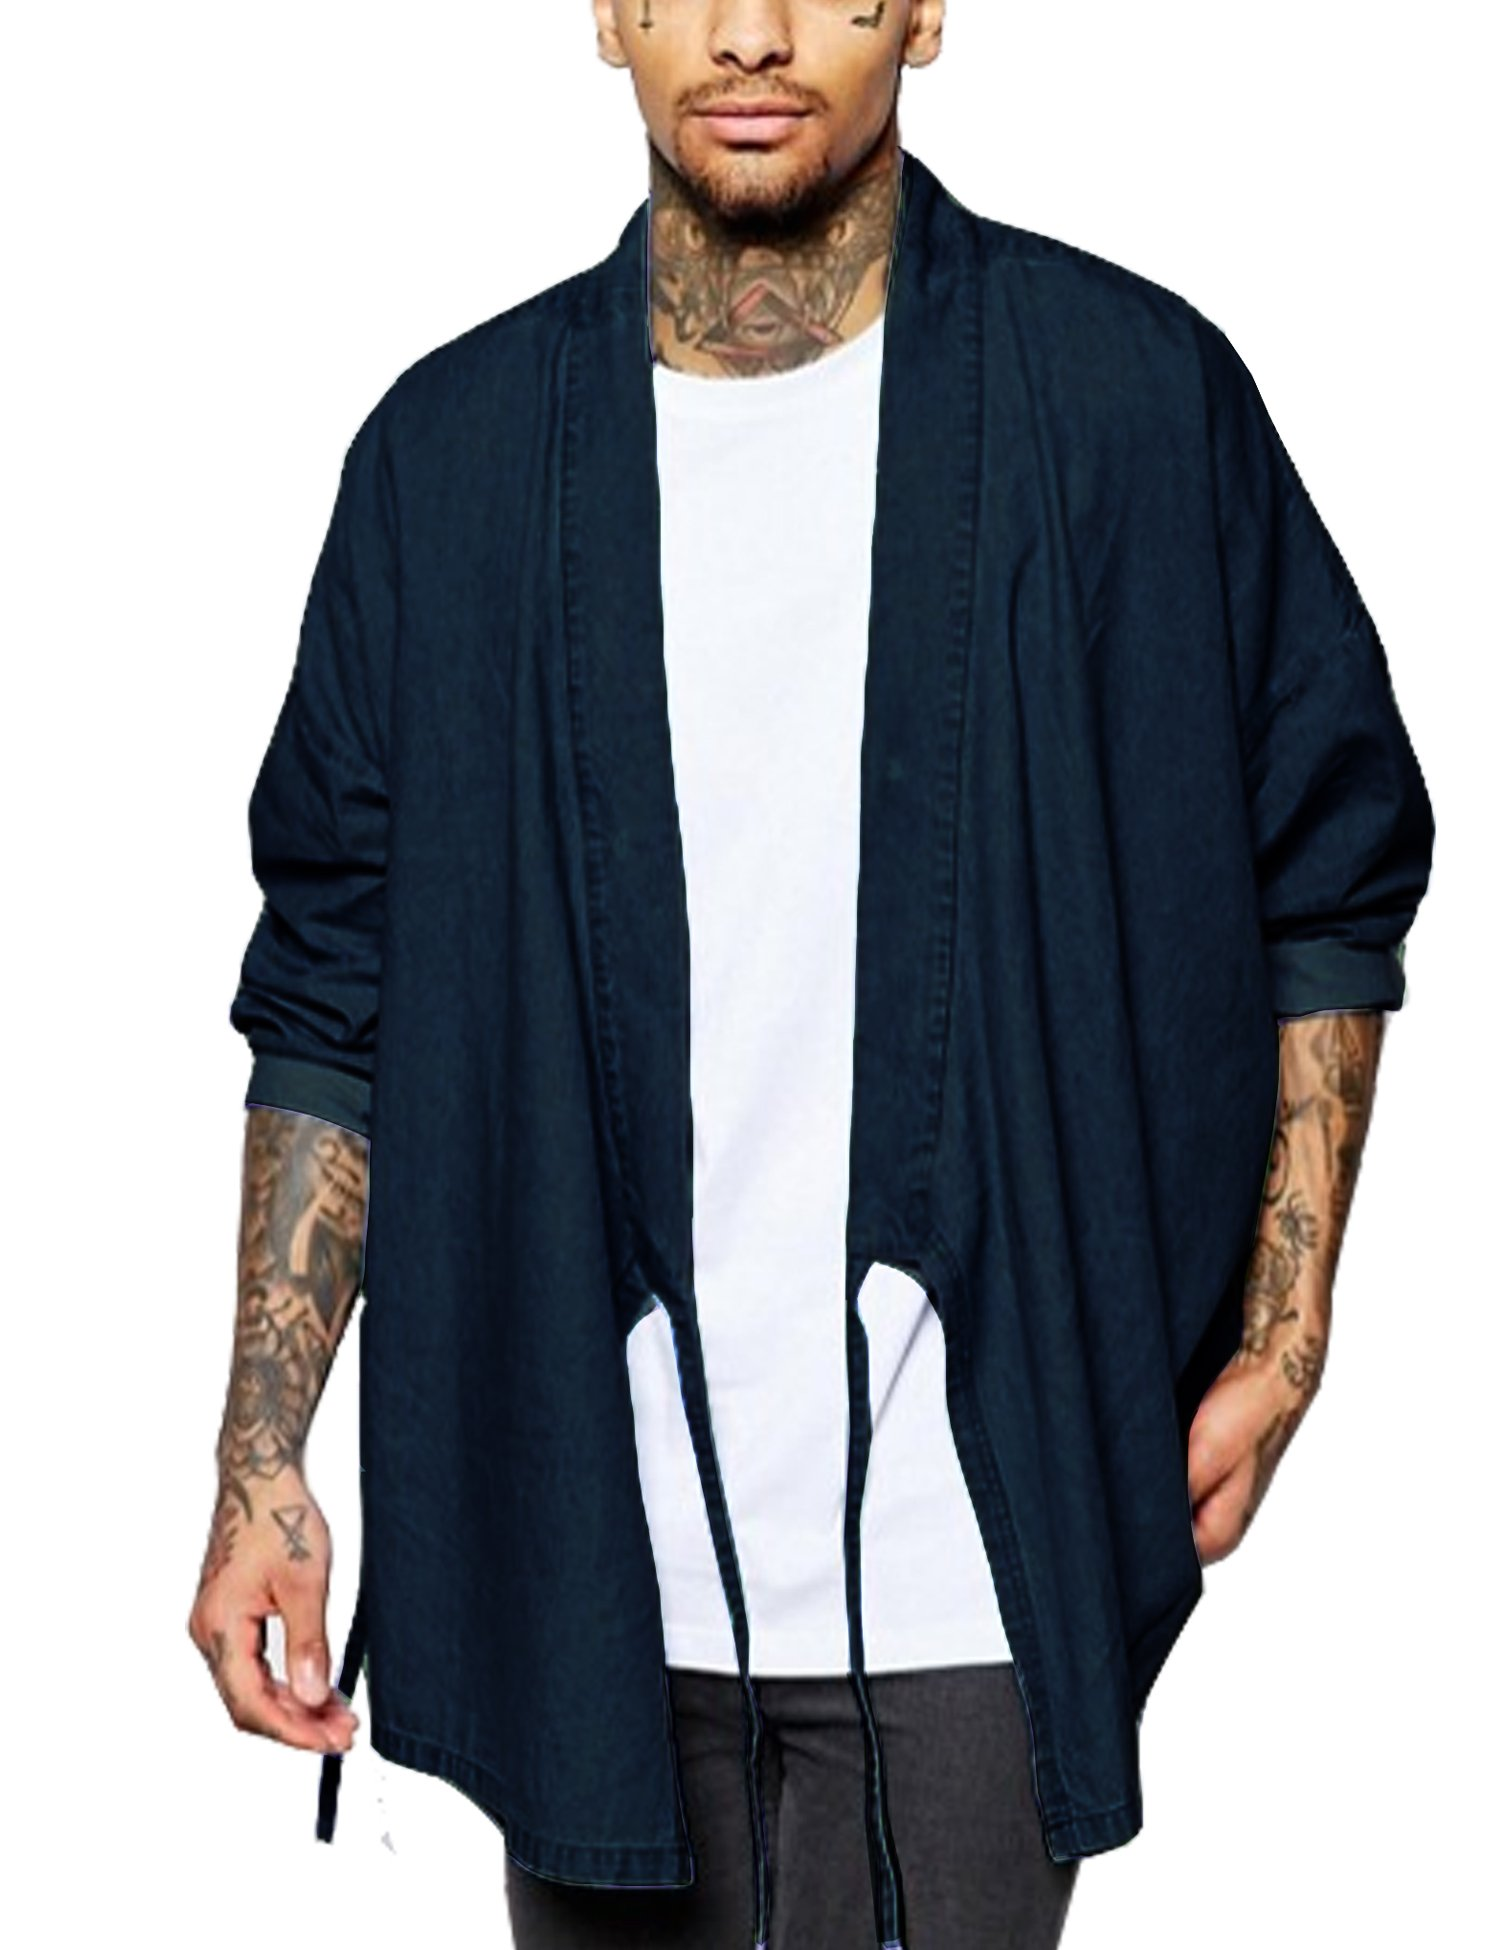 COOFANDY Mens Cardigan Kimono Casual Long Sleeve Loose Fit Denim Open Front Cape Cloak,Dark Blue,Large